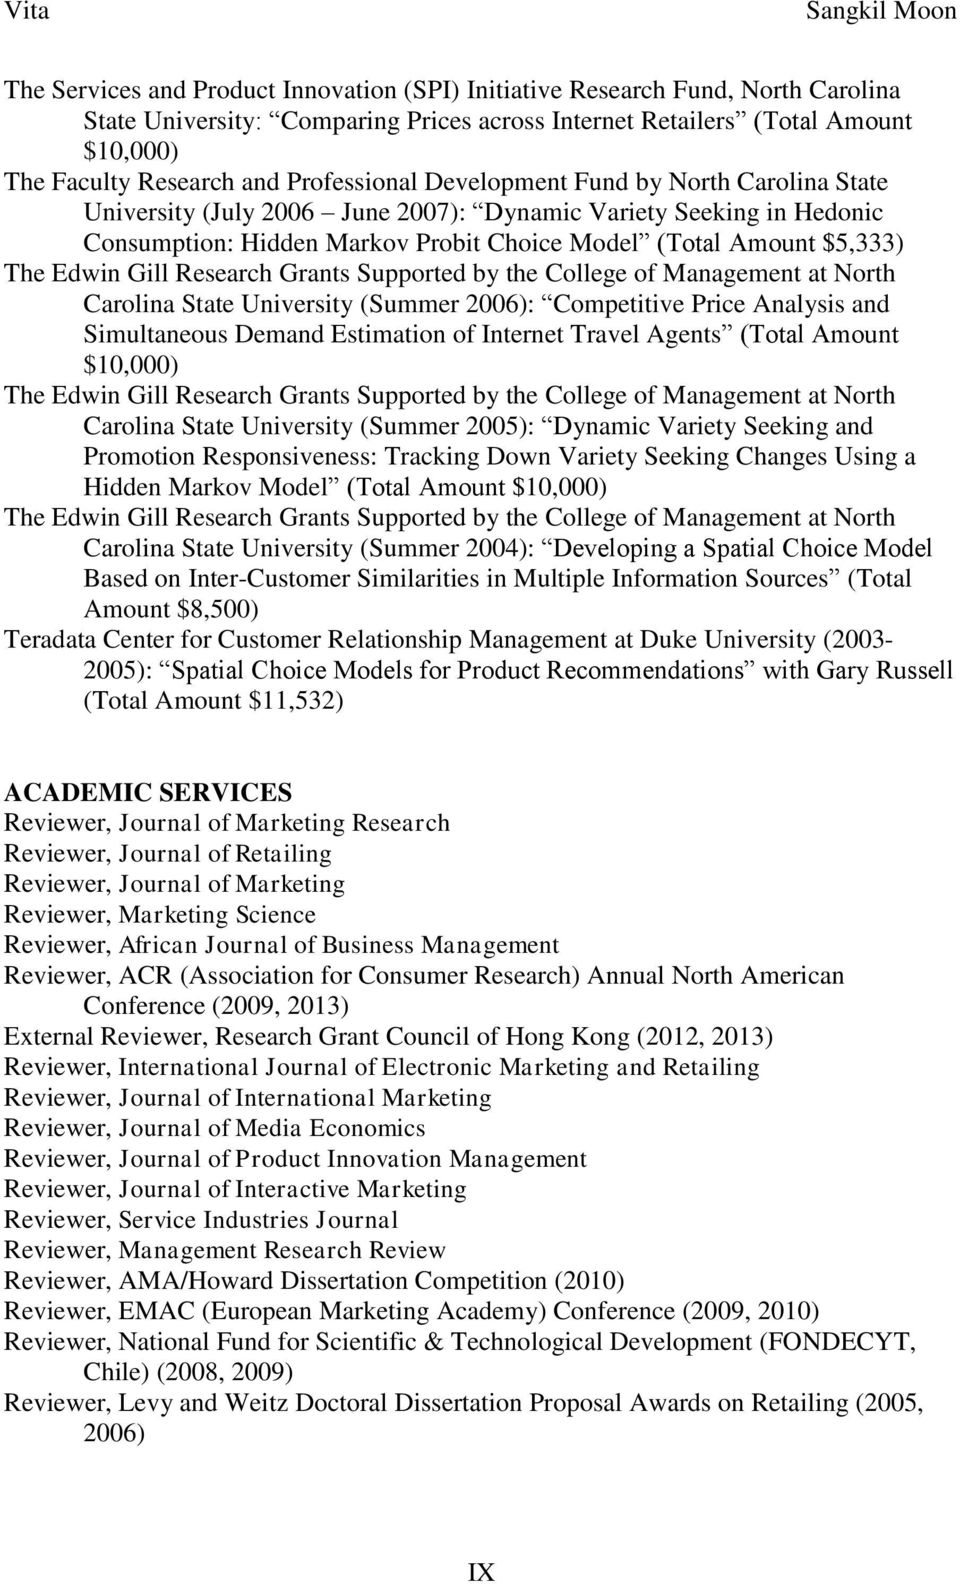 Edwin Gill Research Grants Supported by the College of Management at North Carolina State University (Summer 2006): Competitive Price Analysis and Simultaneous Demand Estimation of Internet Travel